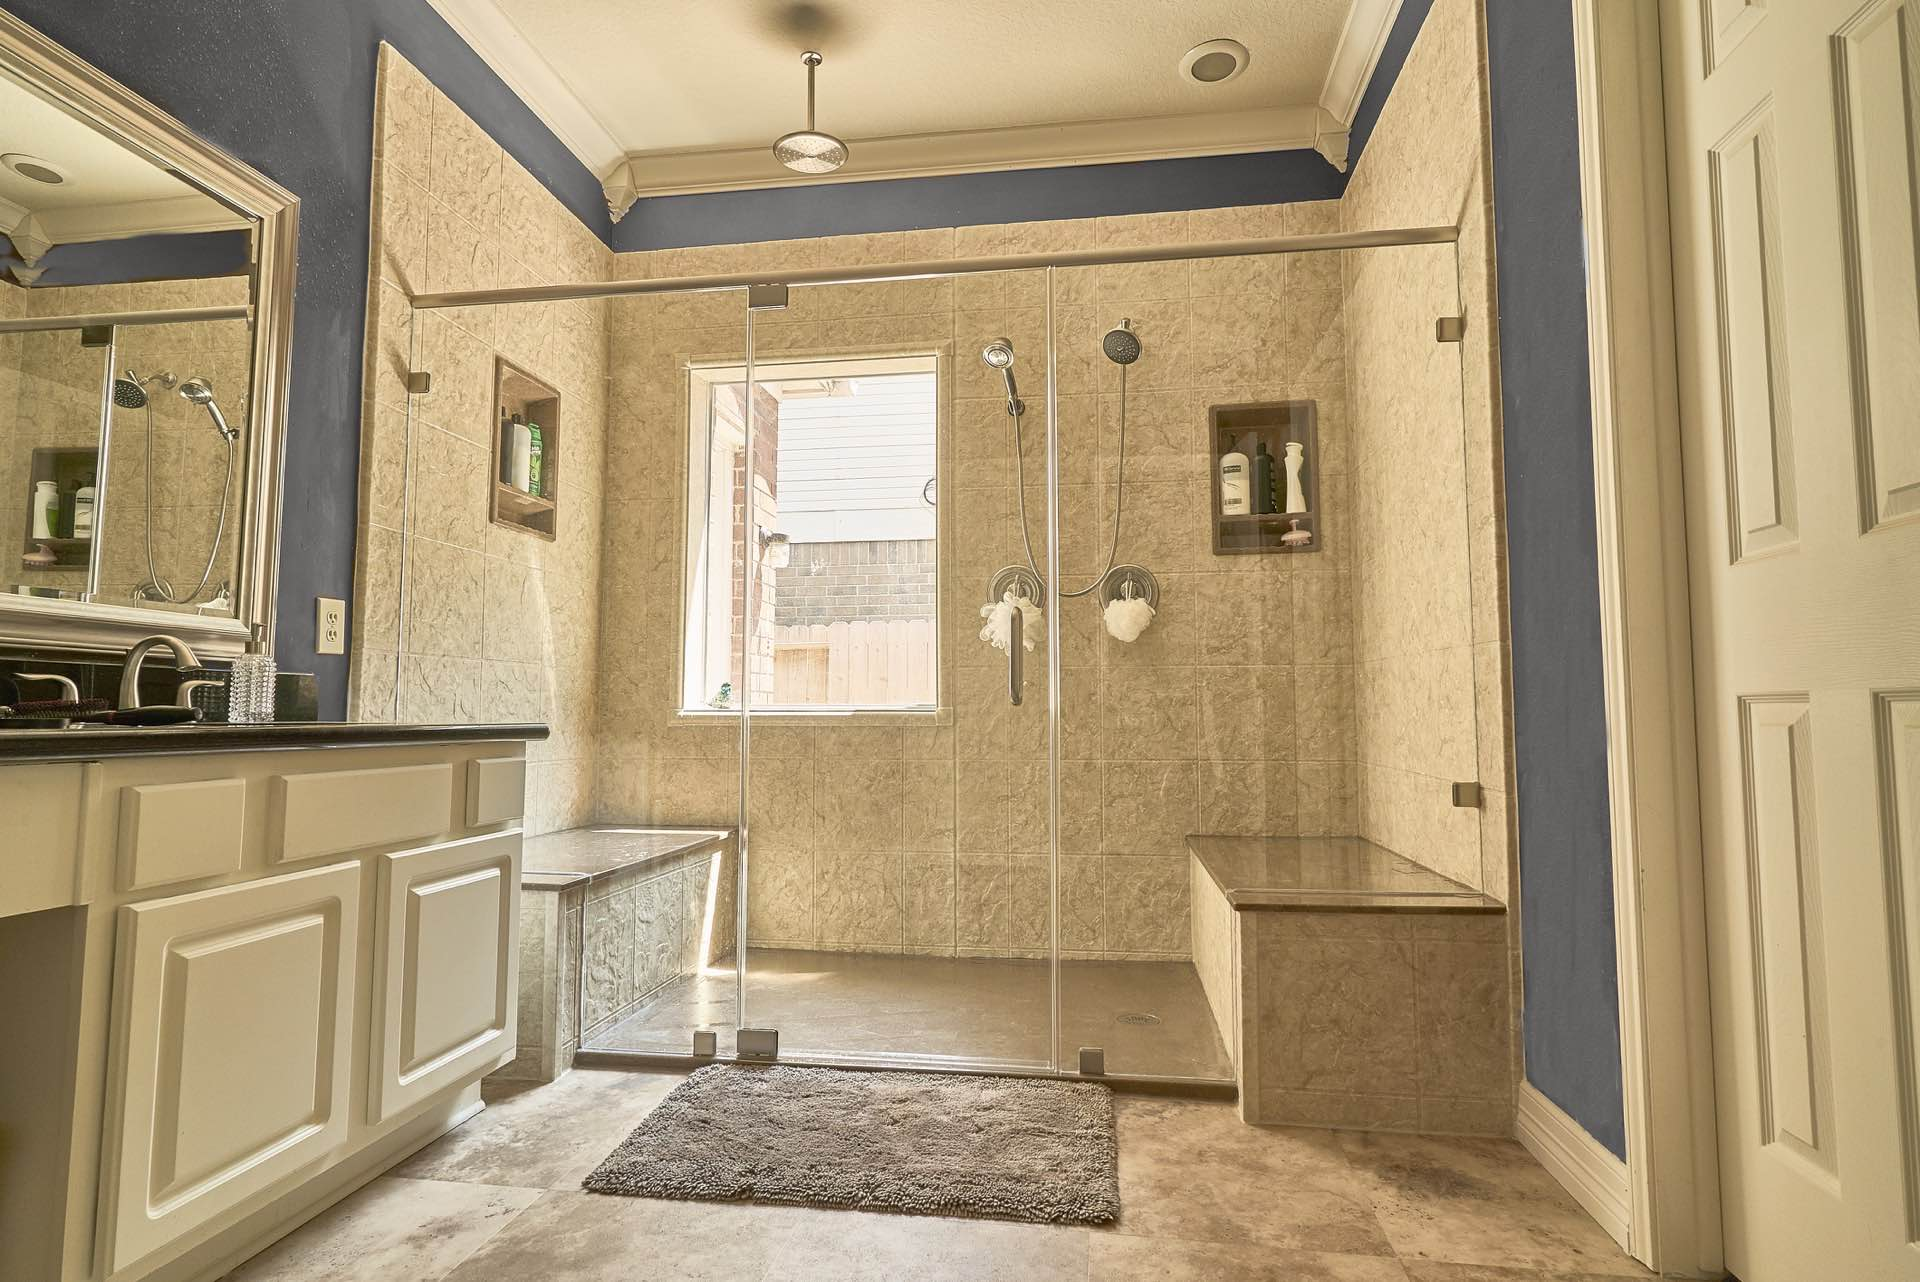 Full Bathroom Remodel Bath Kitchen Pros - How much is a full bathroom remodel